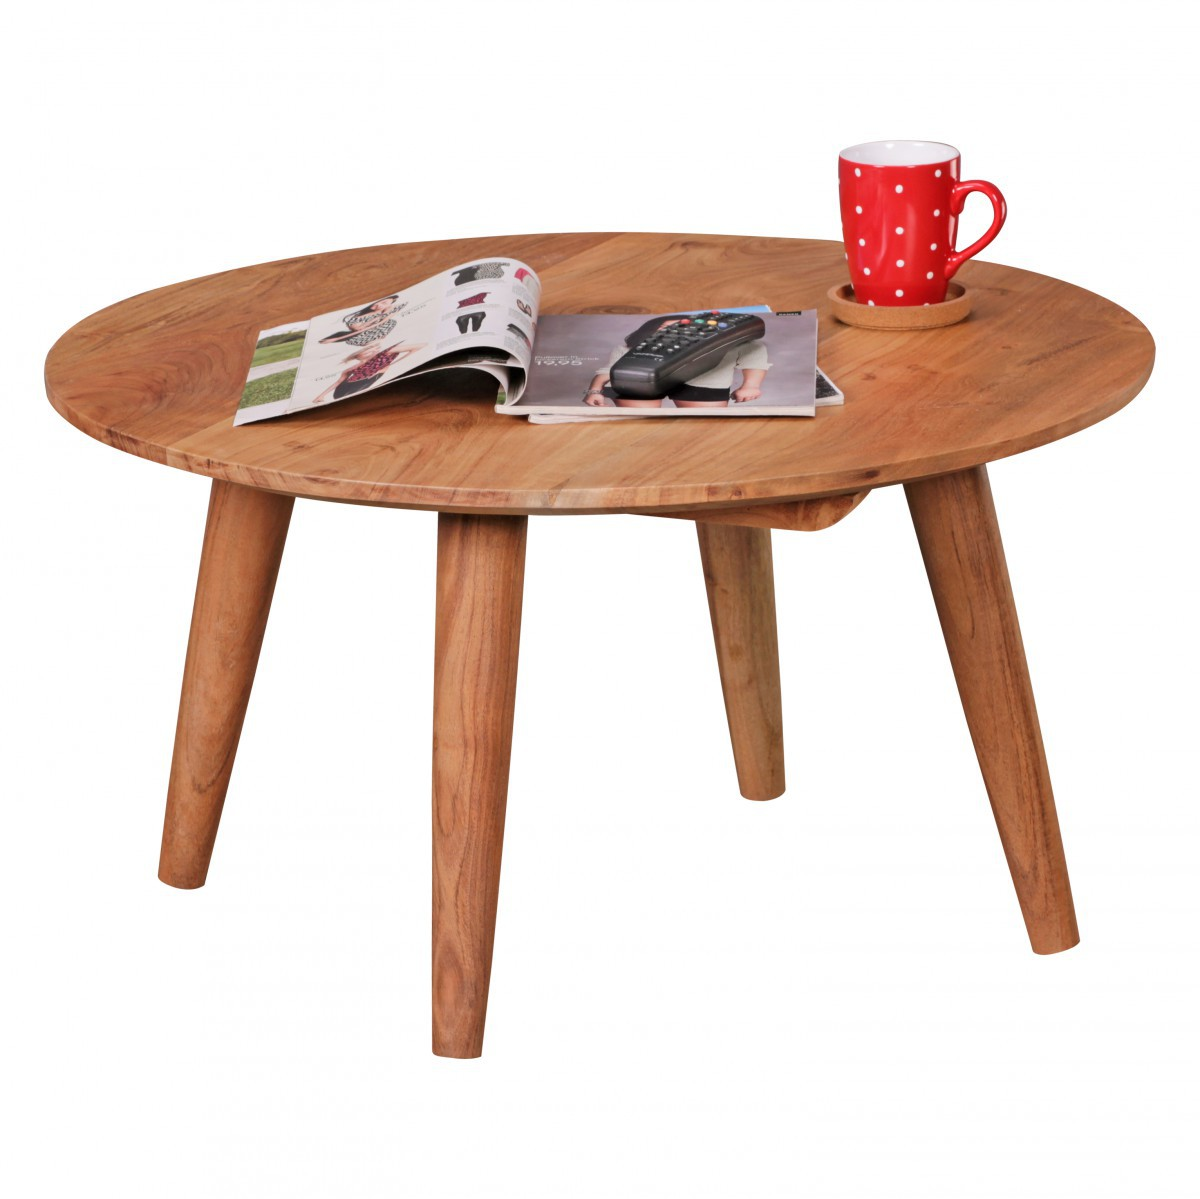 Finebuy table basse en bois massif acacia table basse for Table basse design ronde